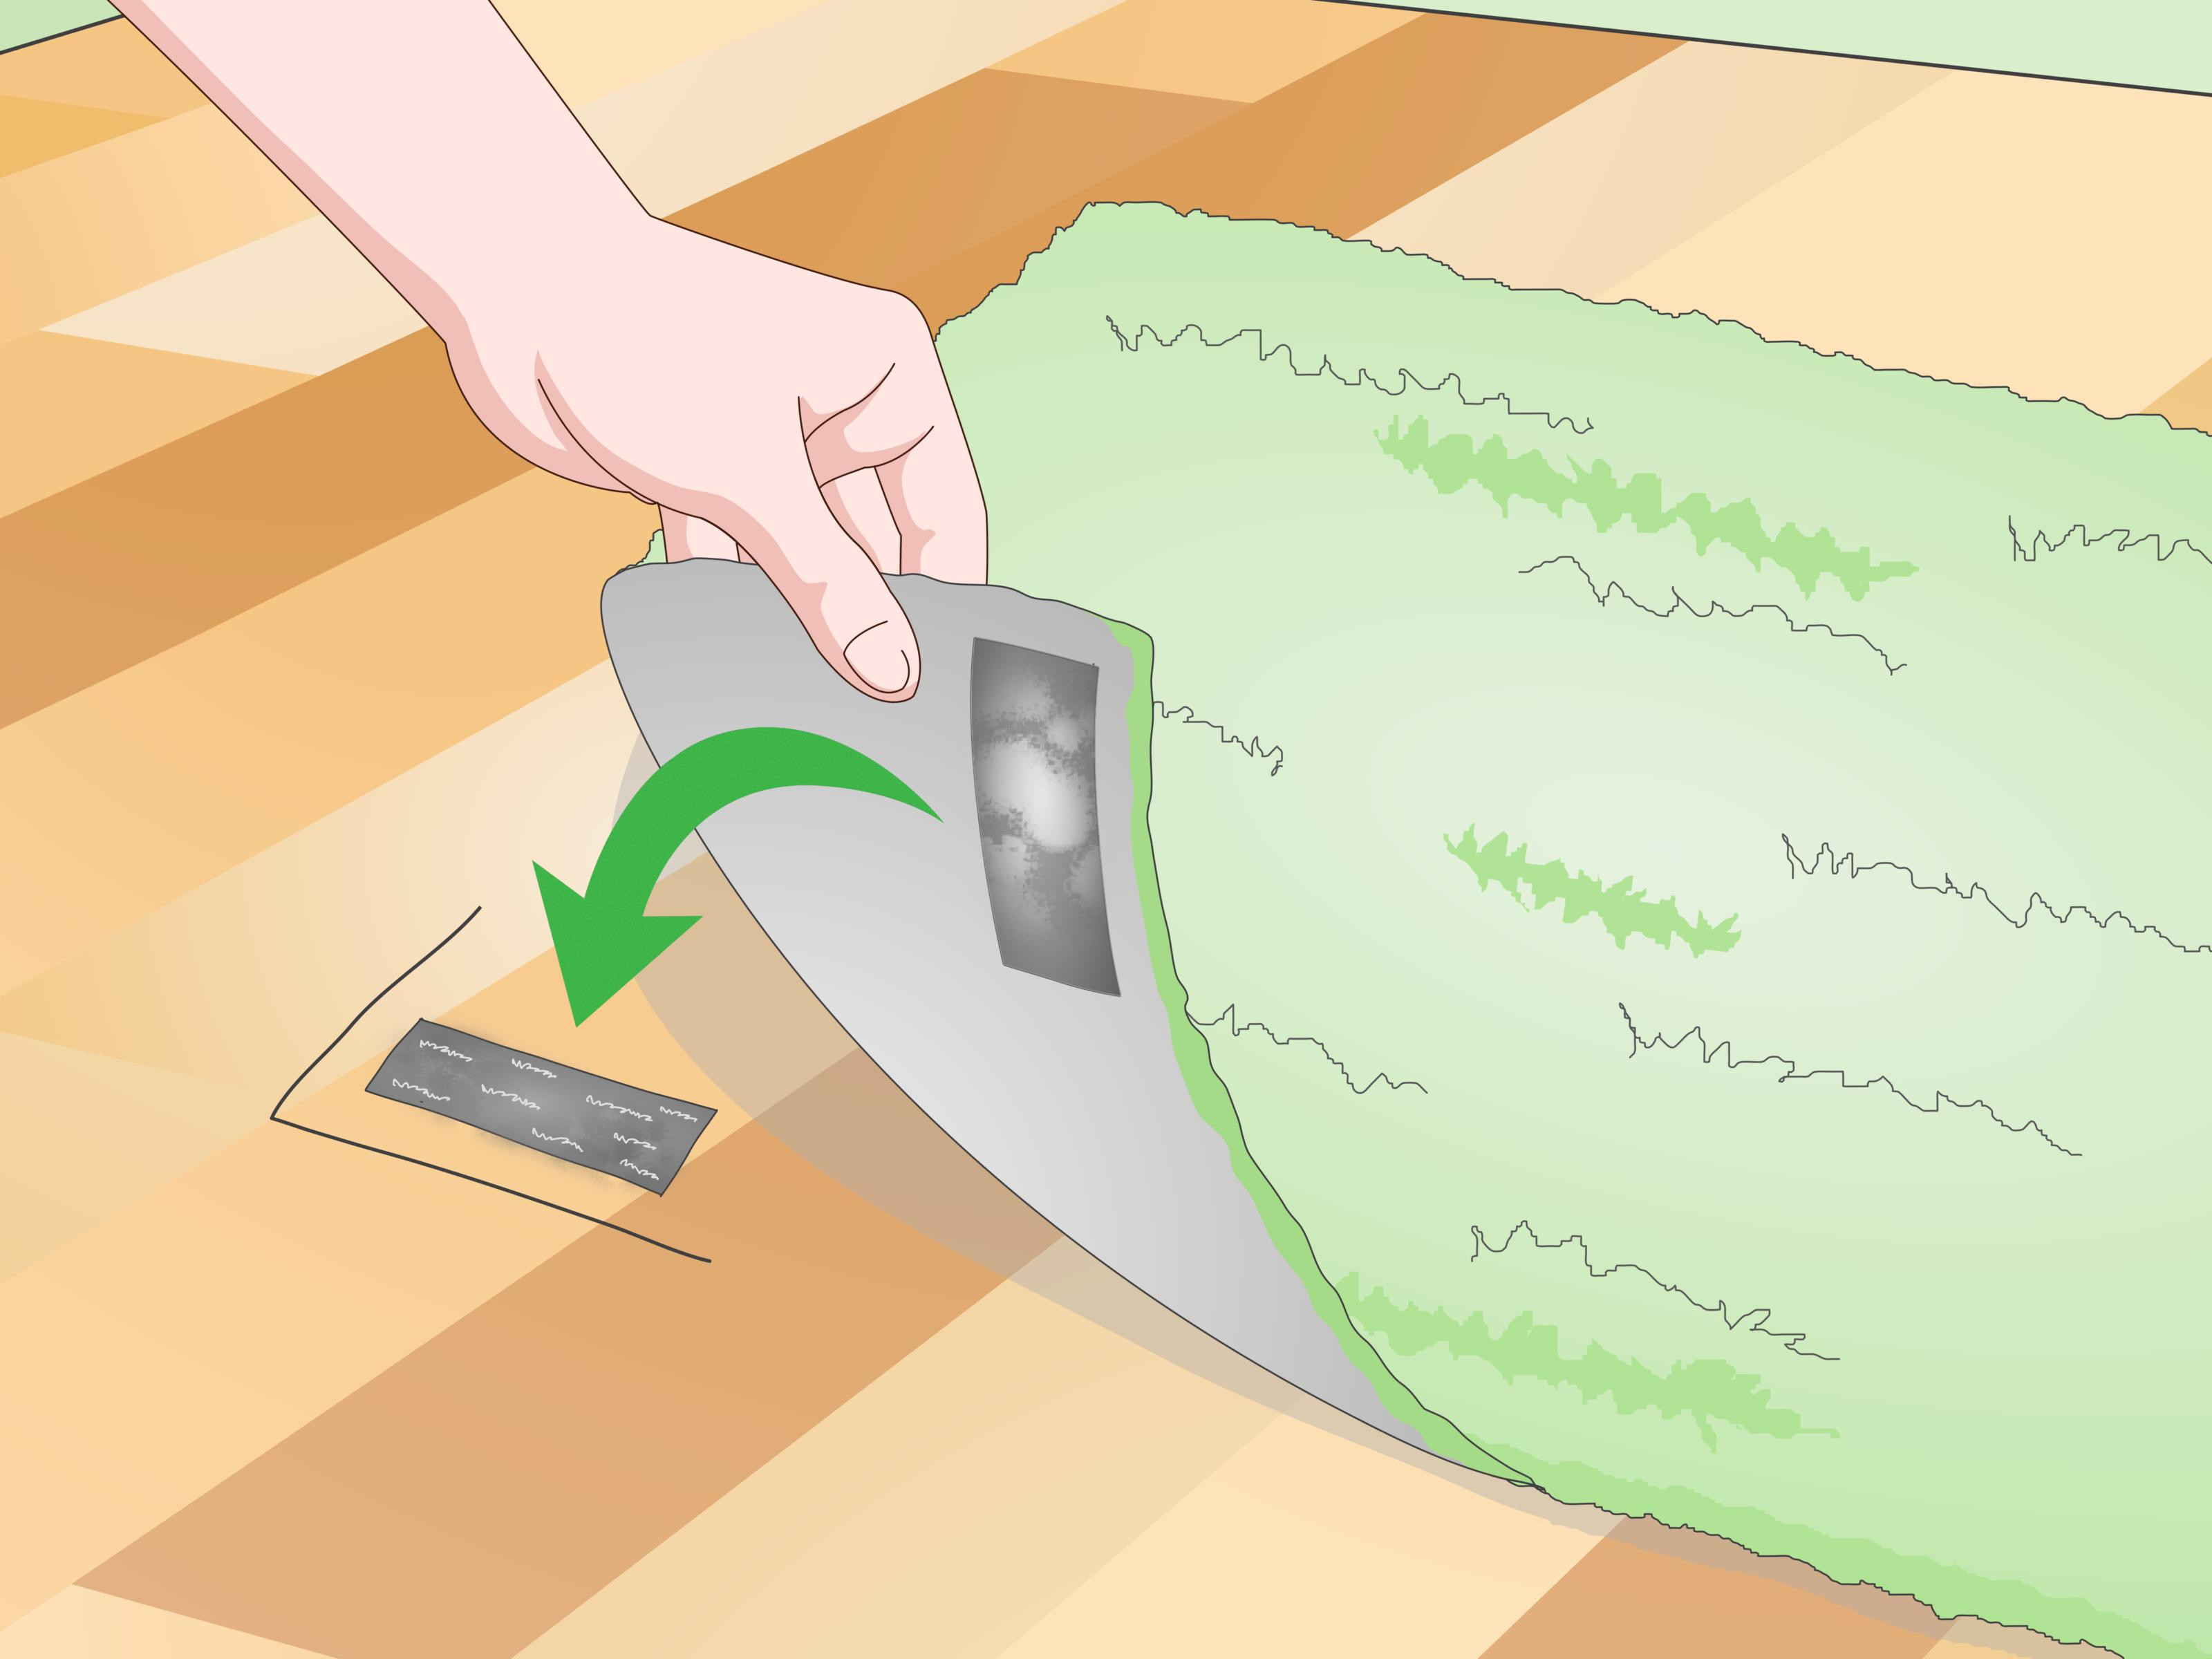 hardwood floor adhesive of 3 ways to stop a rug from moving on a wooden floor wikihow with regard to stop a rug from moving on a wooden floor step 18